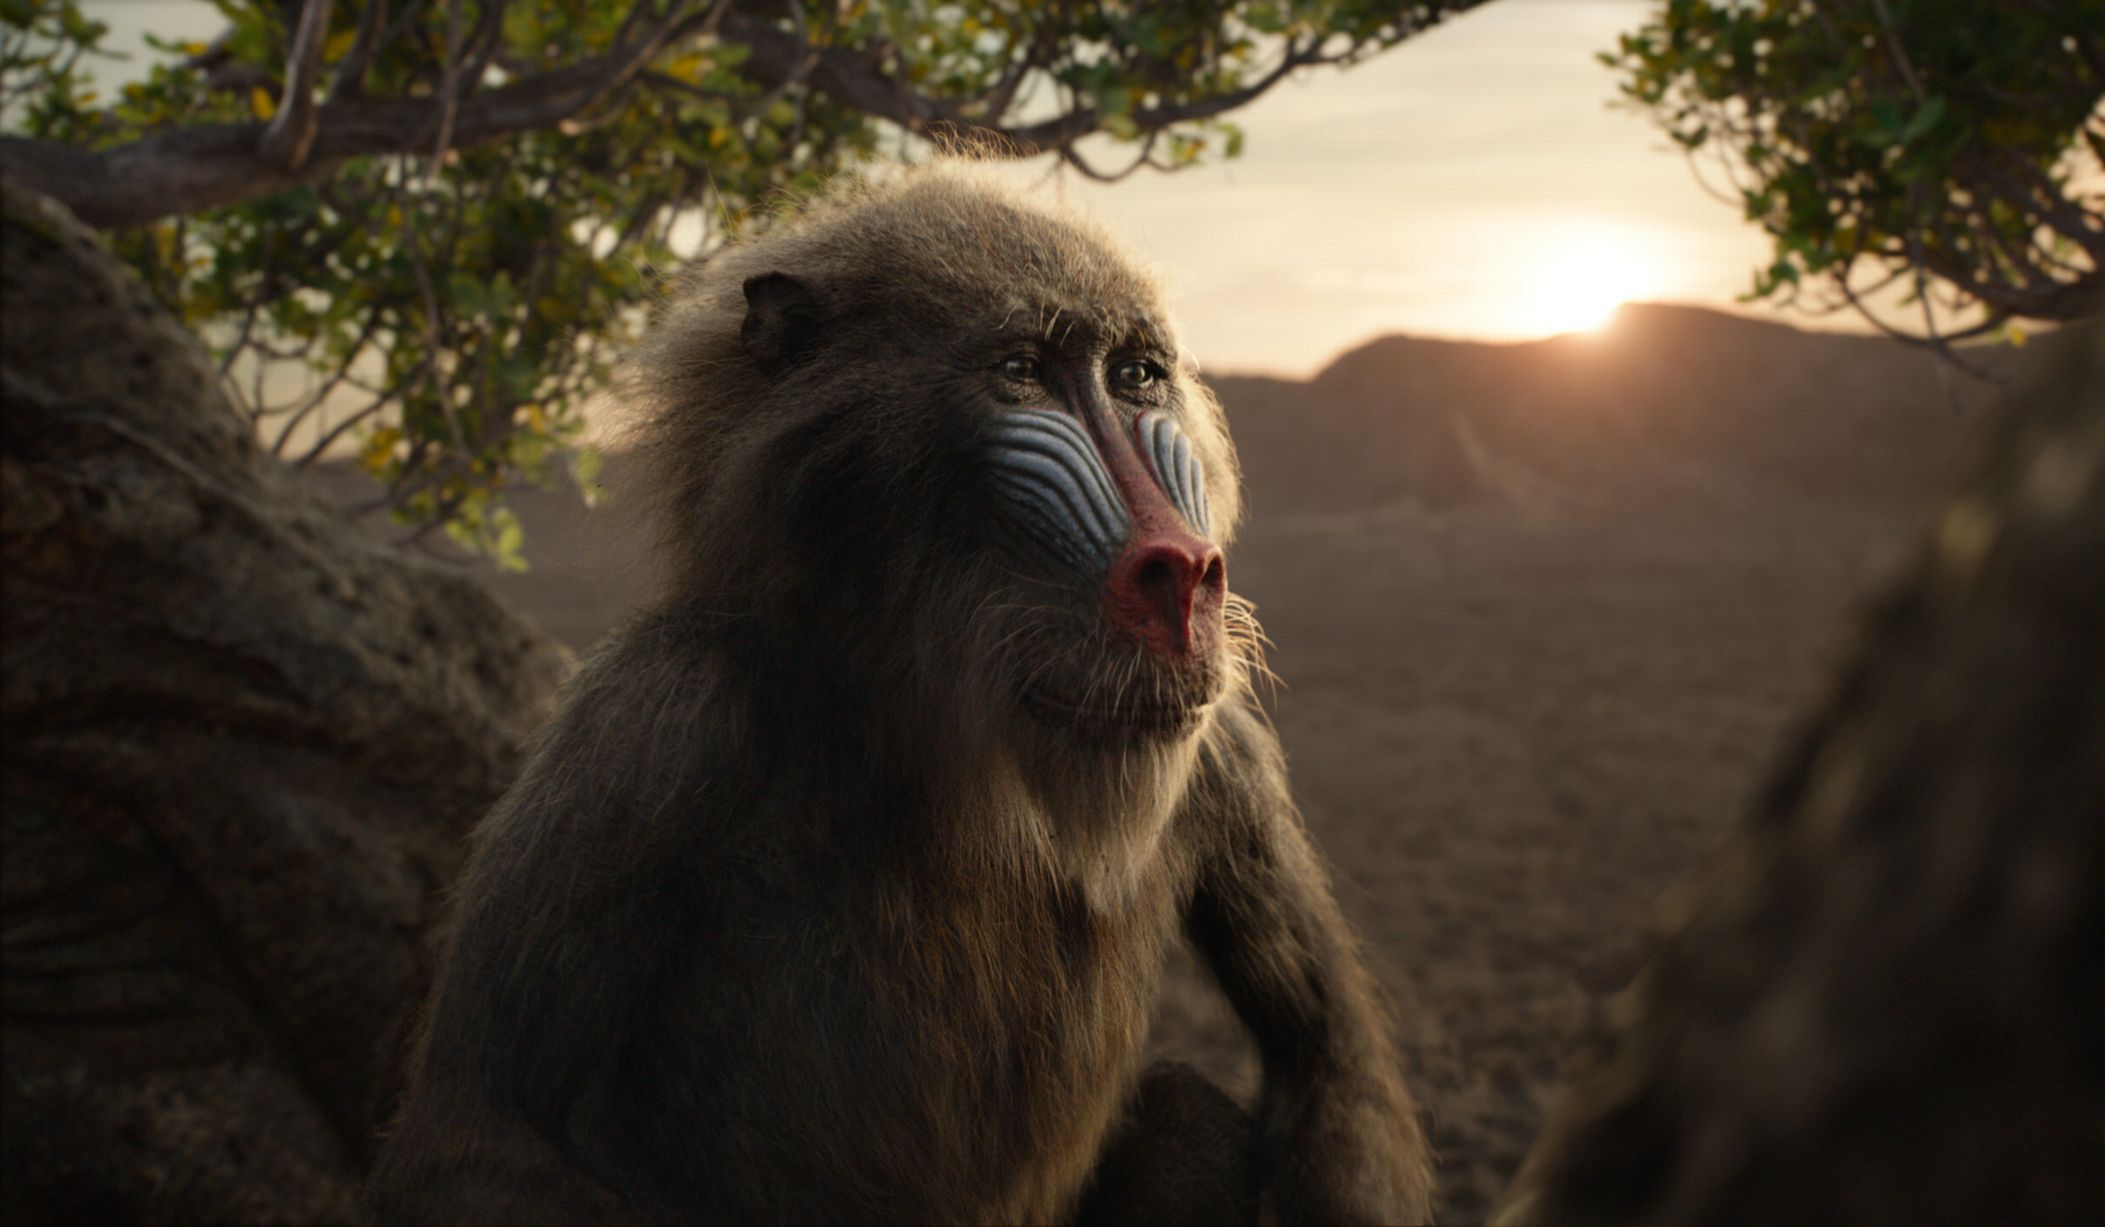 Rafiki looks almost exactly the same.